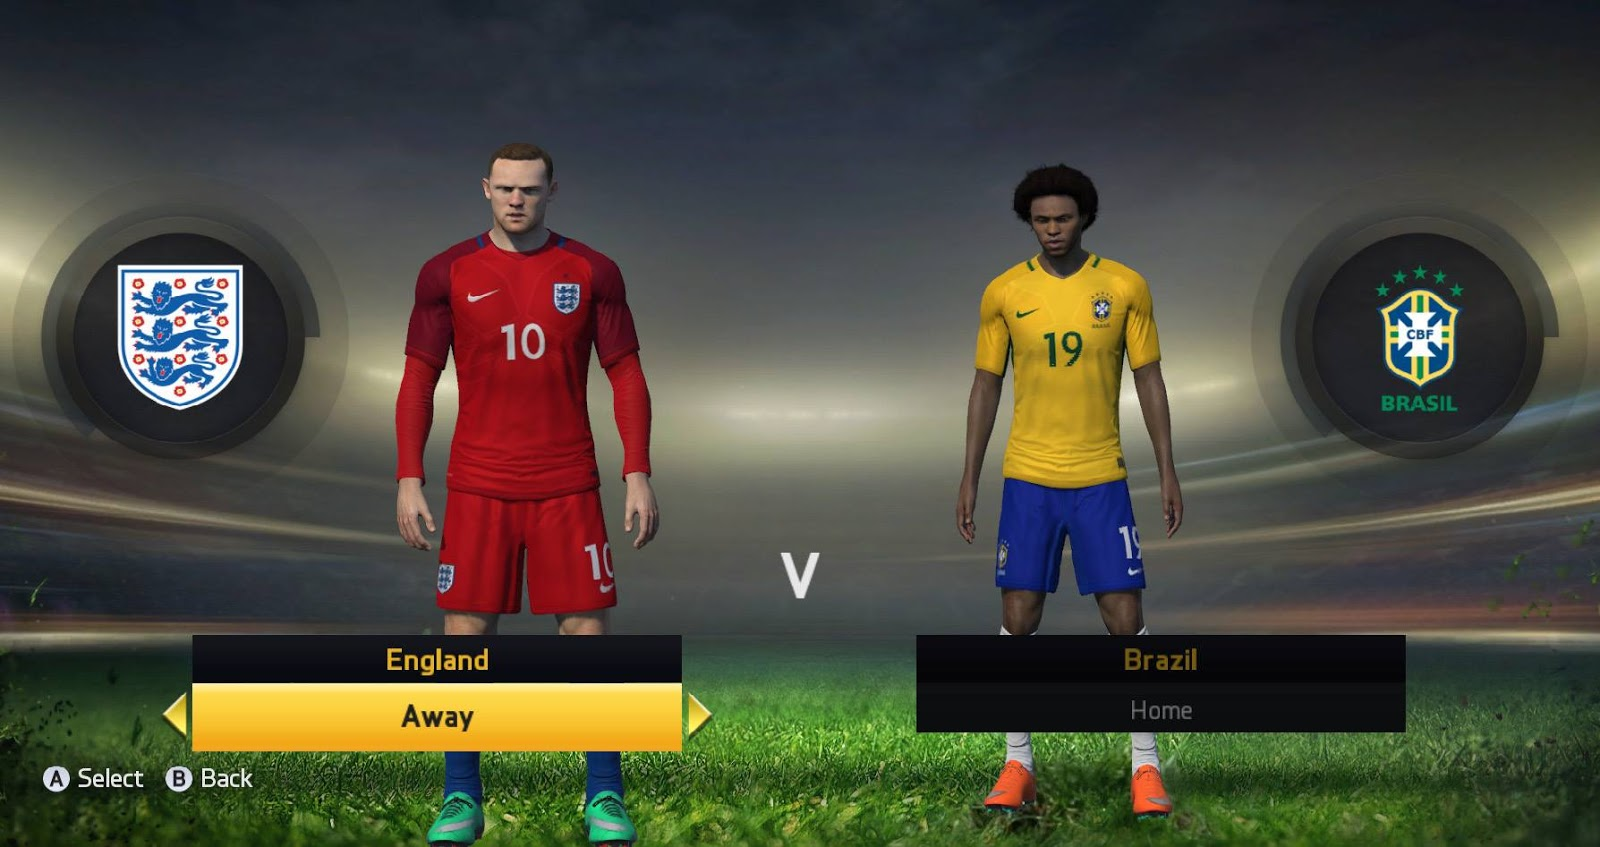 FIFA 15 - Downloads, Mods, Updates on FIFA Patch